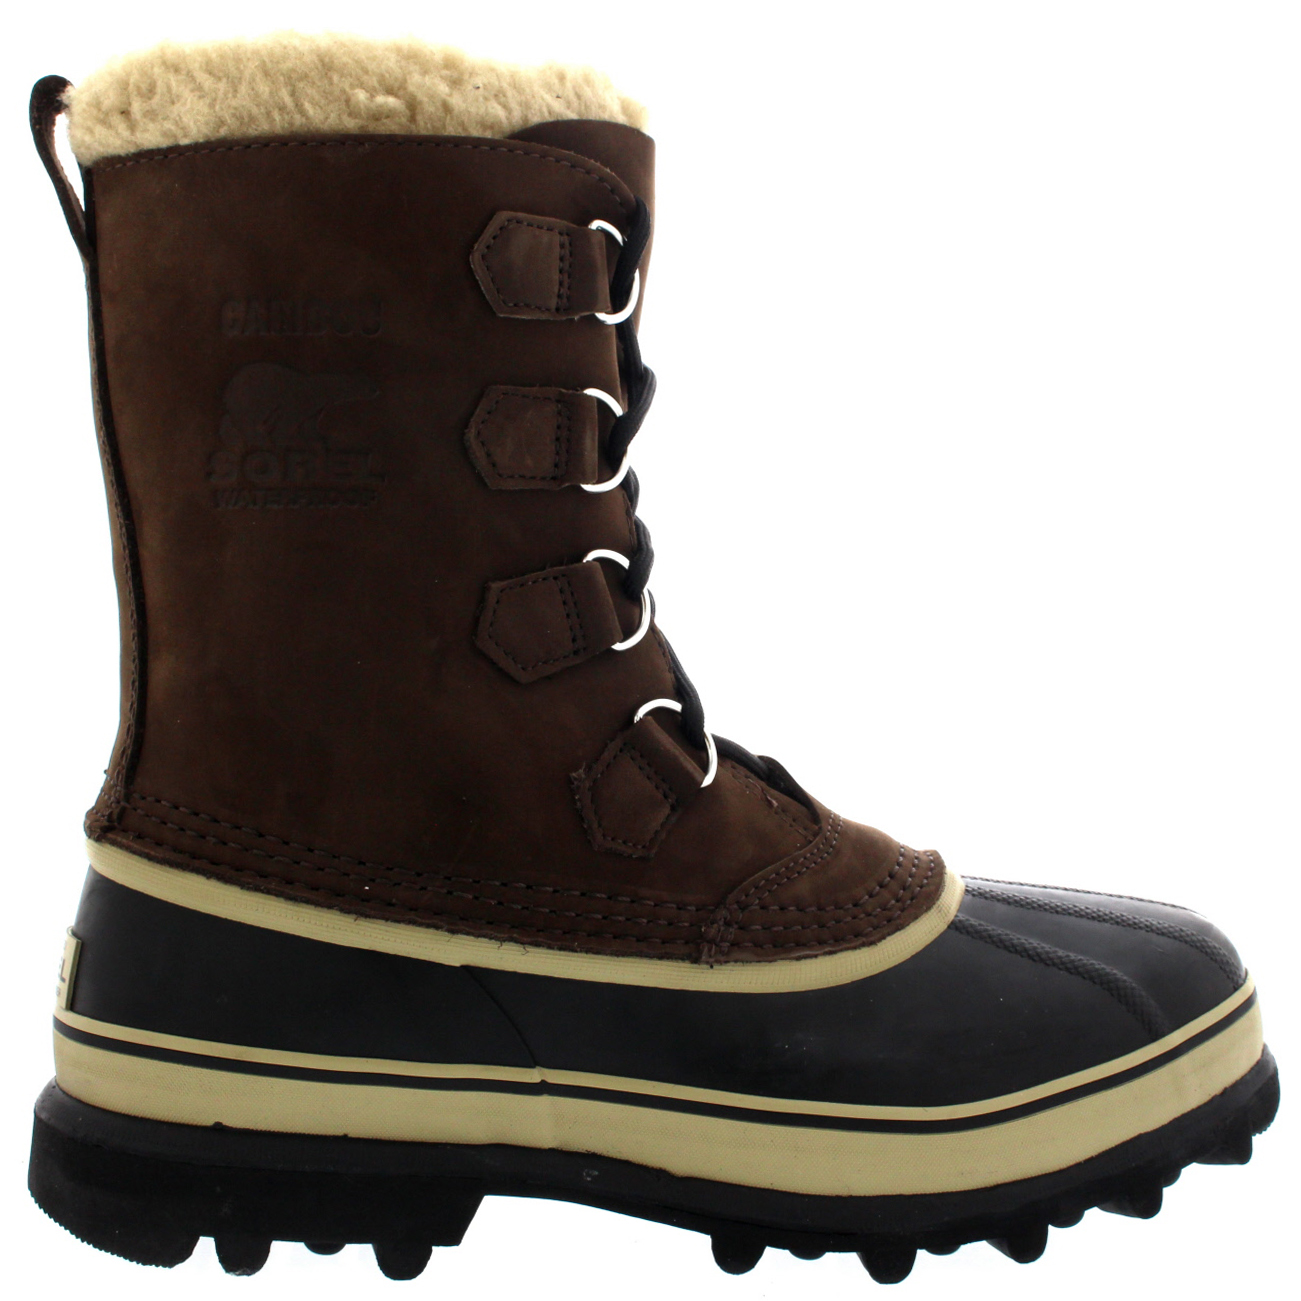 bc9892ecd54 Details about Mens Sorel Caribou Winter Snow Waterproof Fleece Lined Mid  Calf Boots UK 7-12